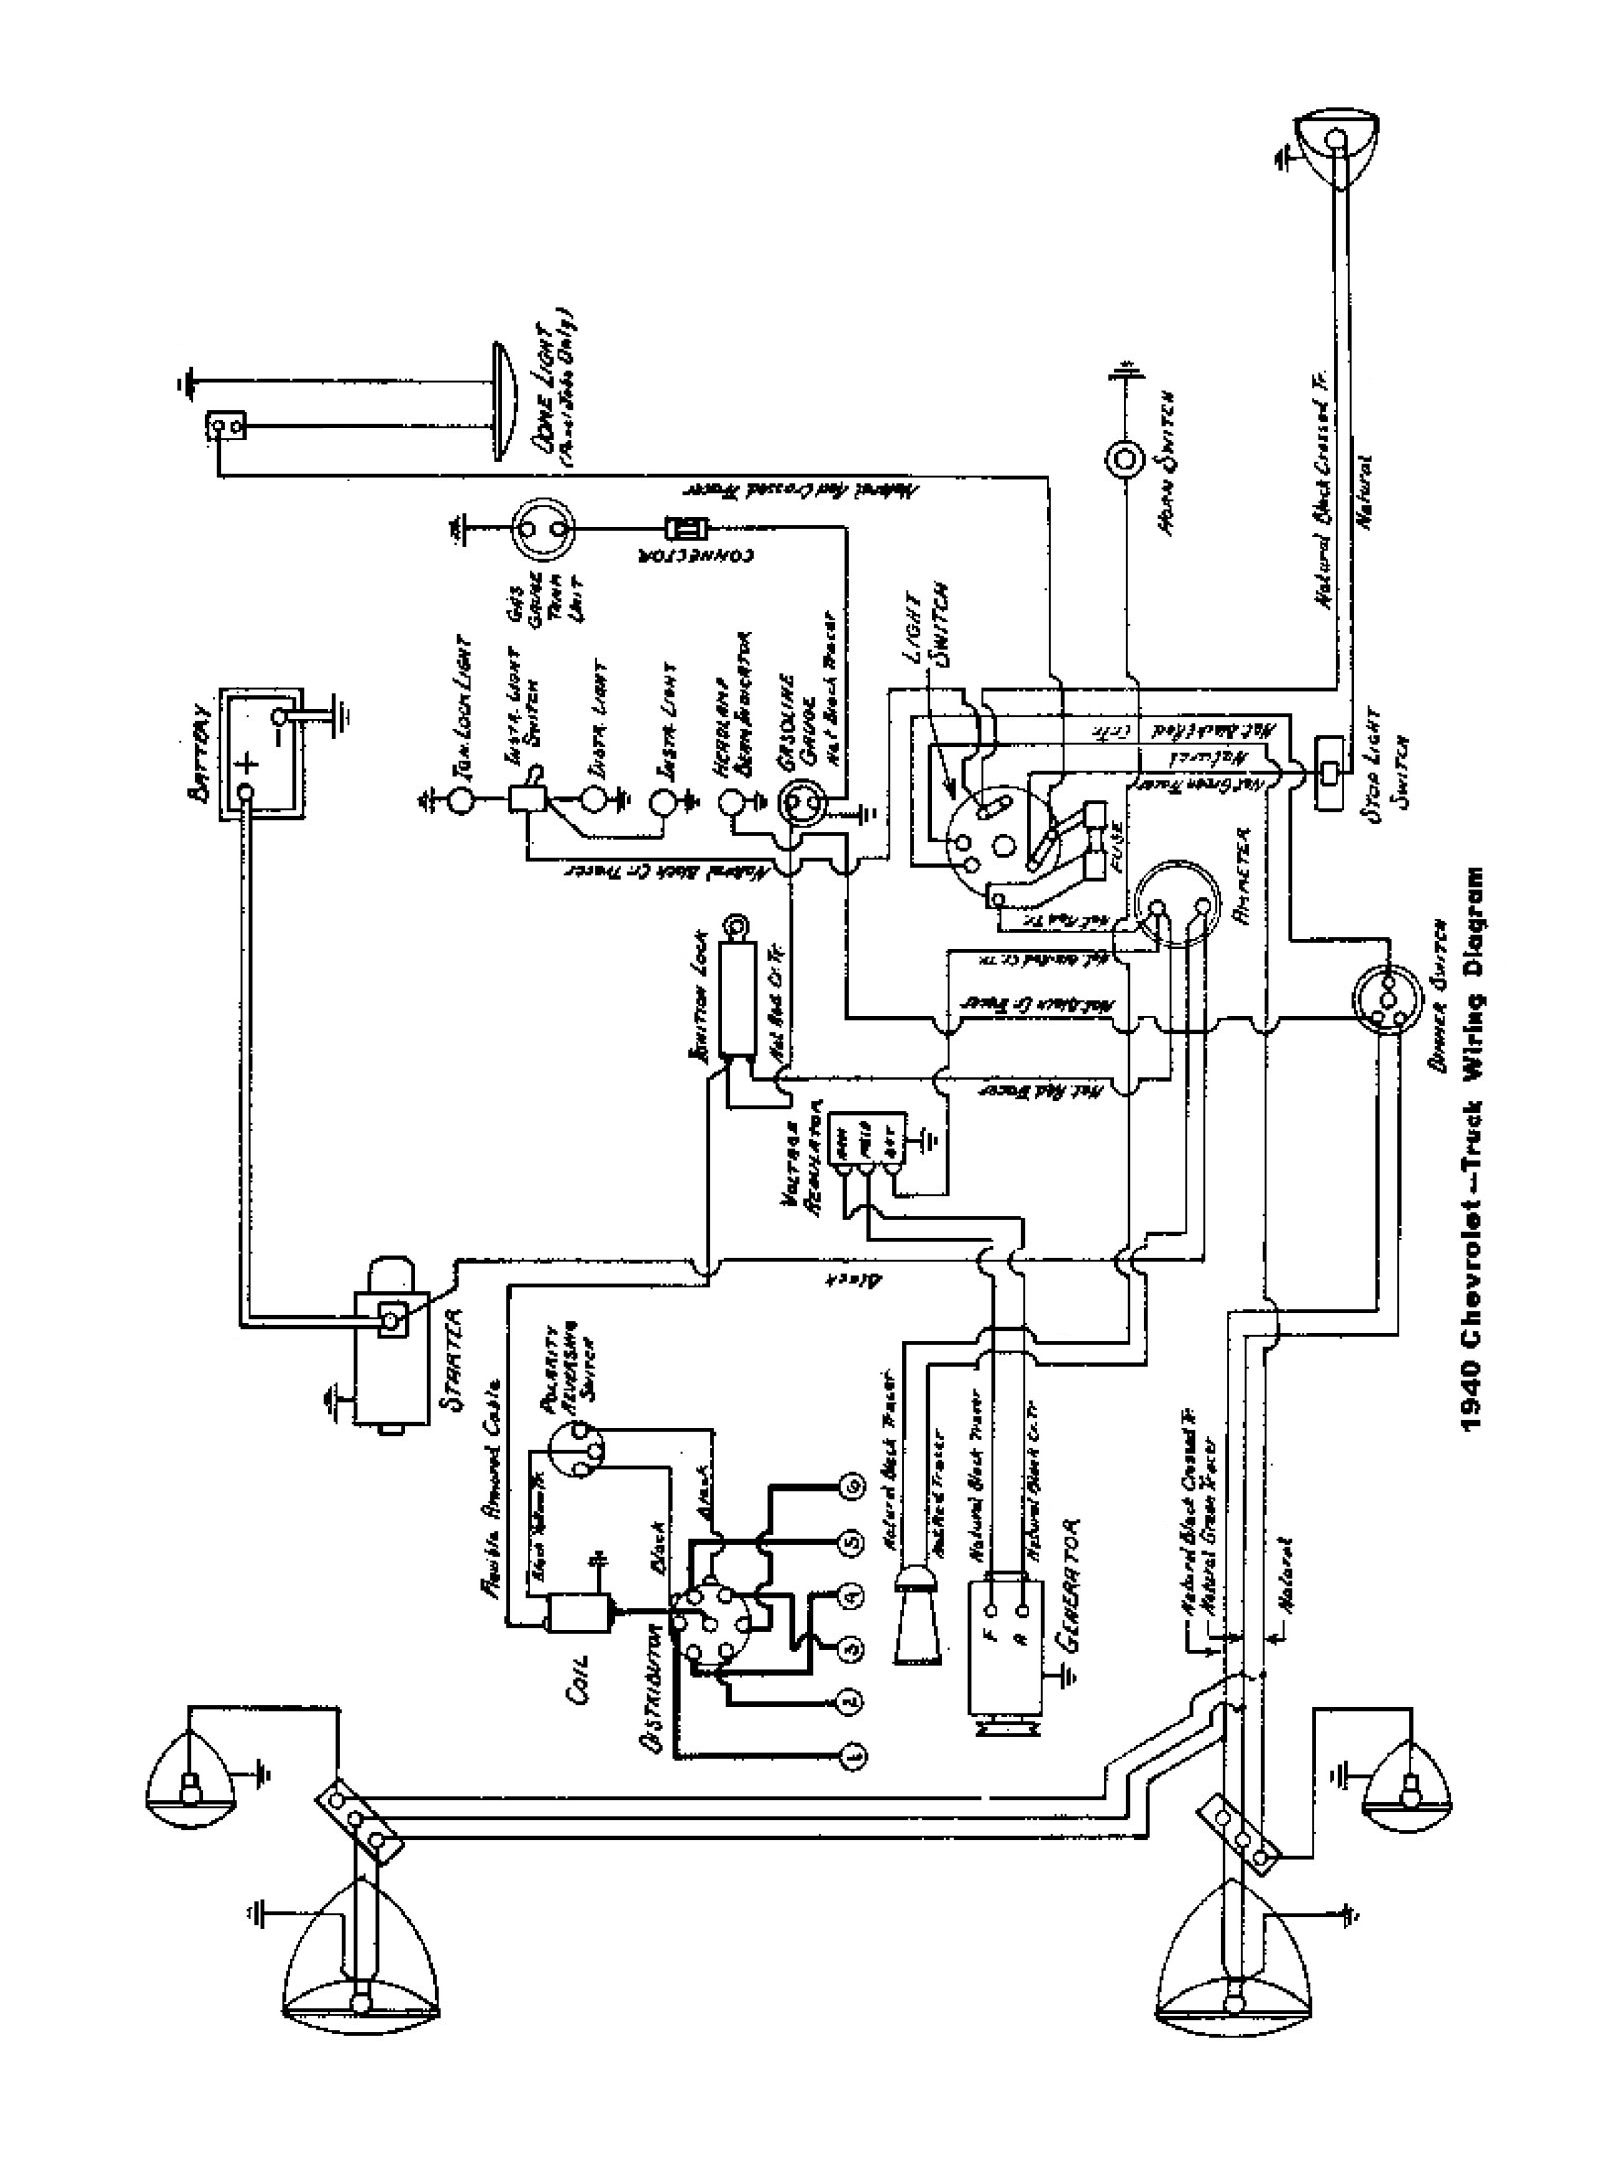 1947 Ford Coupe Wiring Diagram in addition 1950 Ford Coupe Parts further Plymouth Slant Six Engine in addition 56 Plymouth Wiring Diagram together with Kenmore Elite Dishwasher Parts Whirlpool Cabrio Washer Manual Gas Dryer Not Heating Refrigerator In Wiring Diagram 2. on 1937 plymouth engine diagram